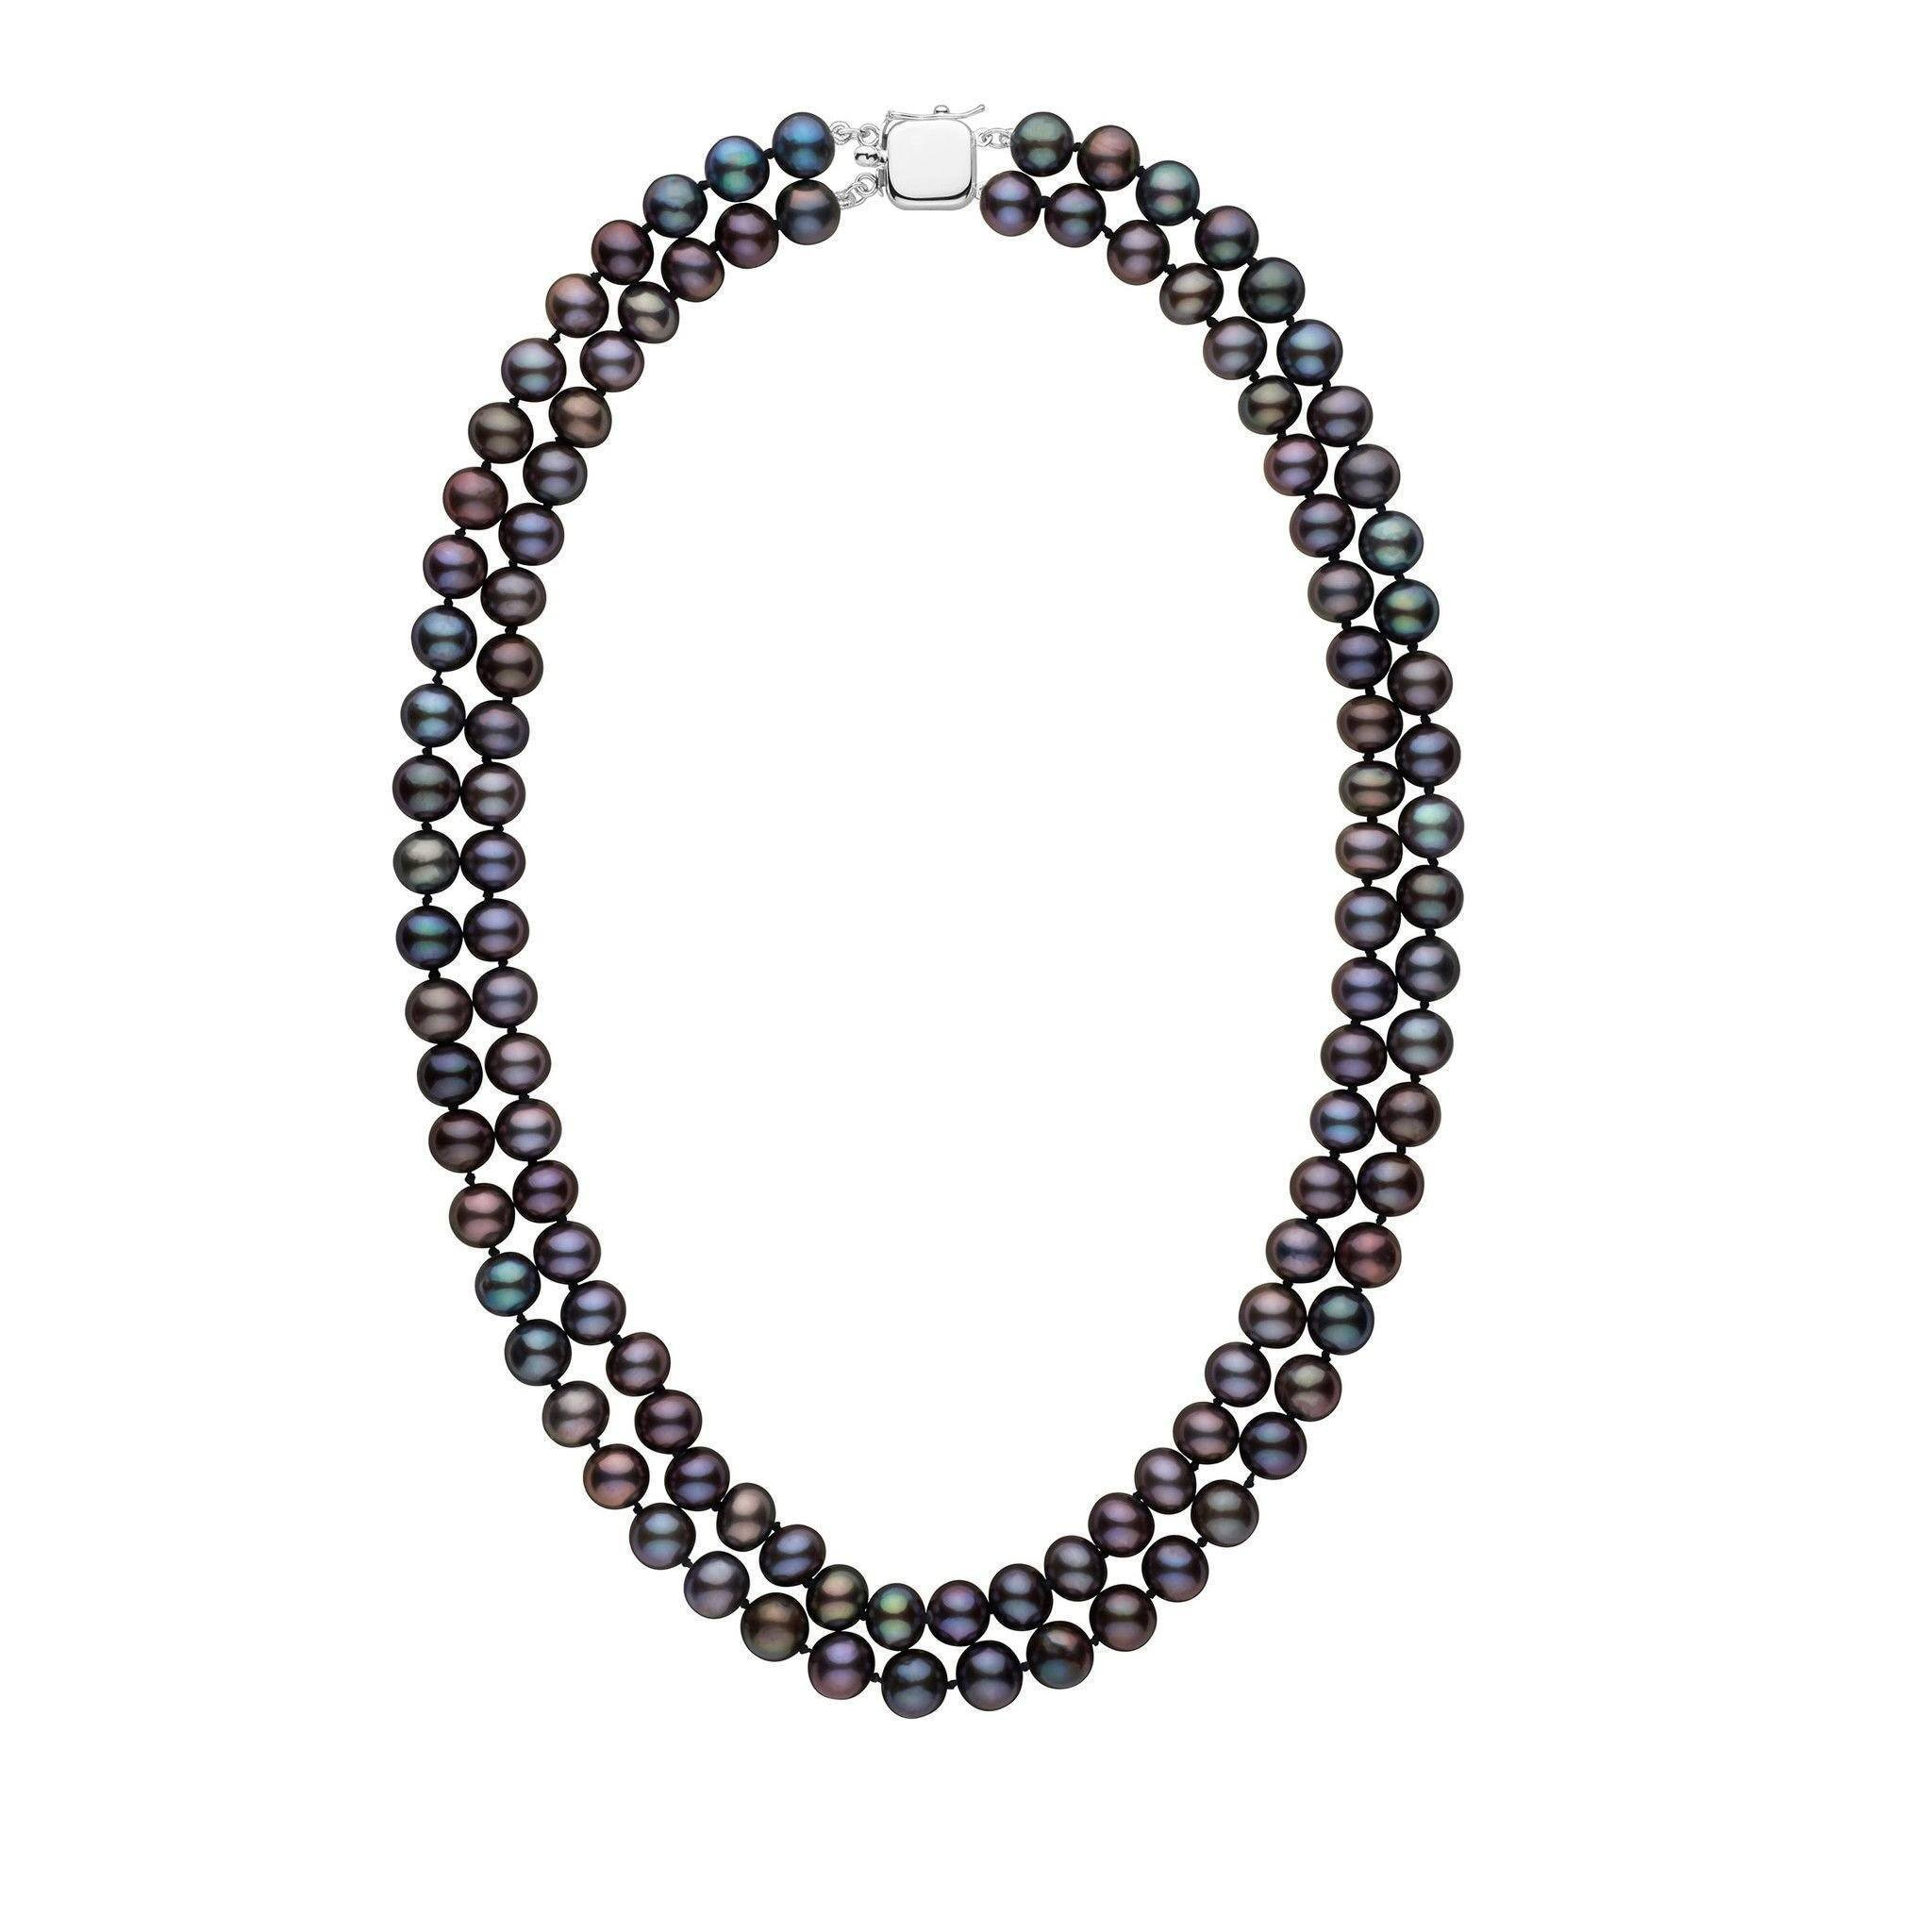 7.5-8.0 mm Double Strand AA+ Black Freshwater Pearl Necklace